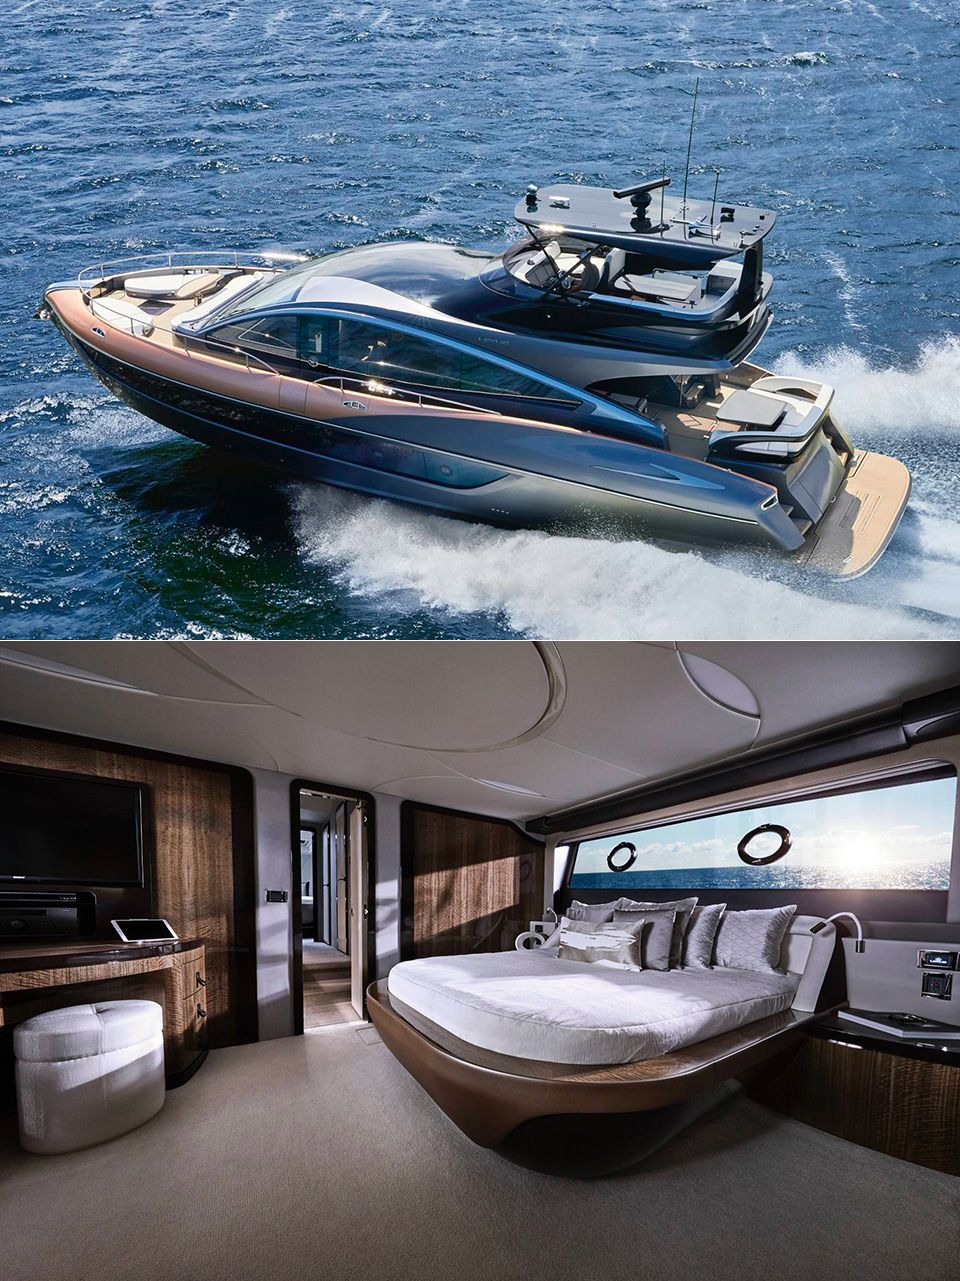 Pin By Jeremy Jones On Jjones Vision In 2020 Luxury Yachts Luxury Yacht Interior Yacht